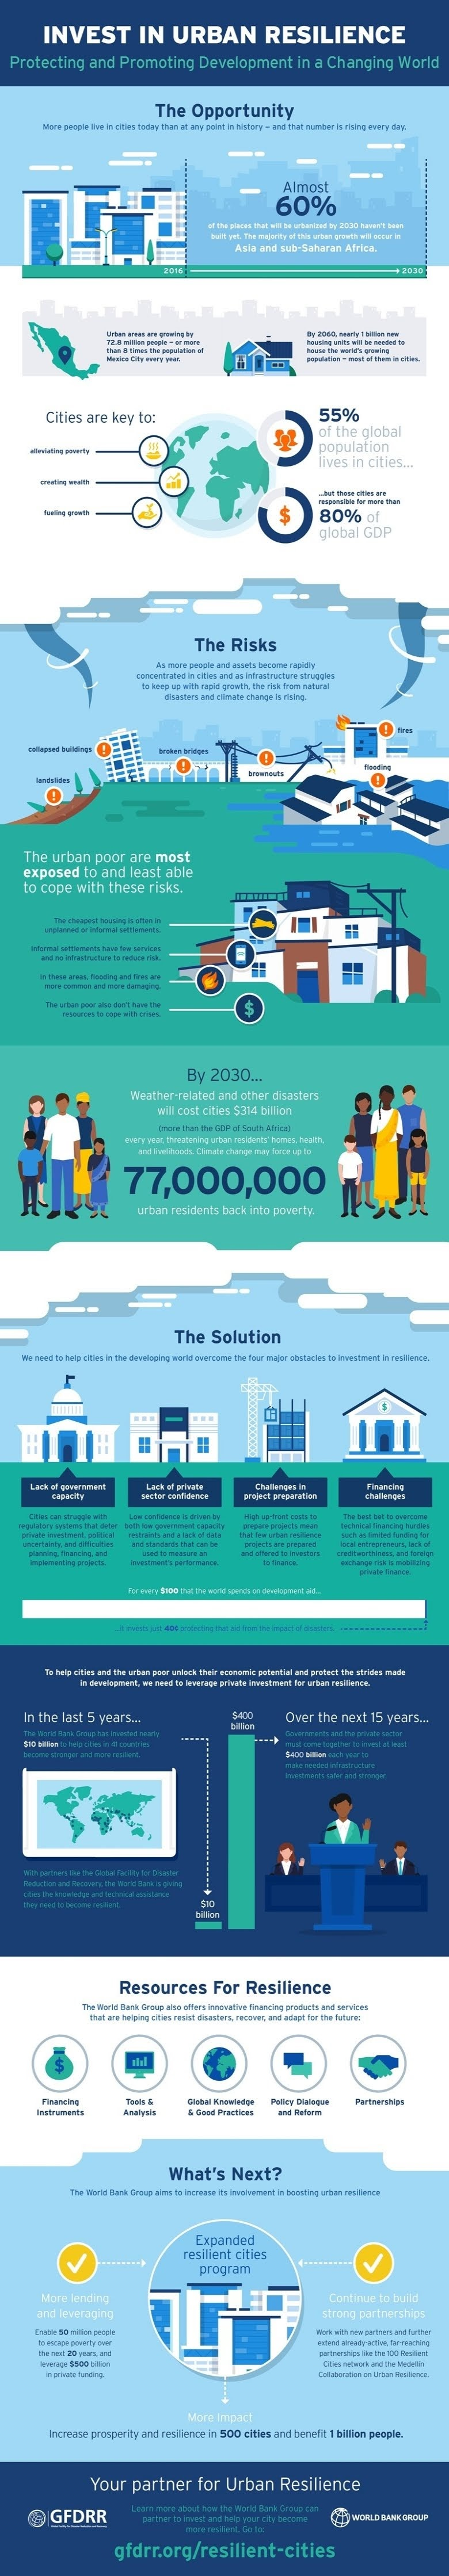 Invest in Urban Resilience #infographic